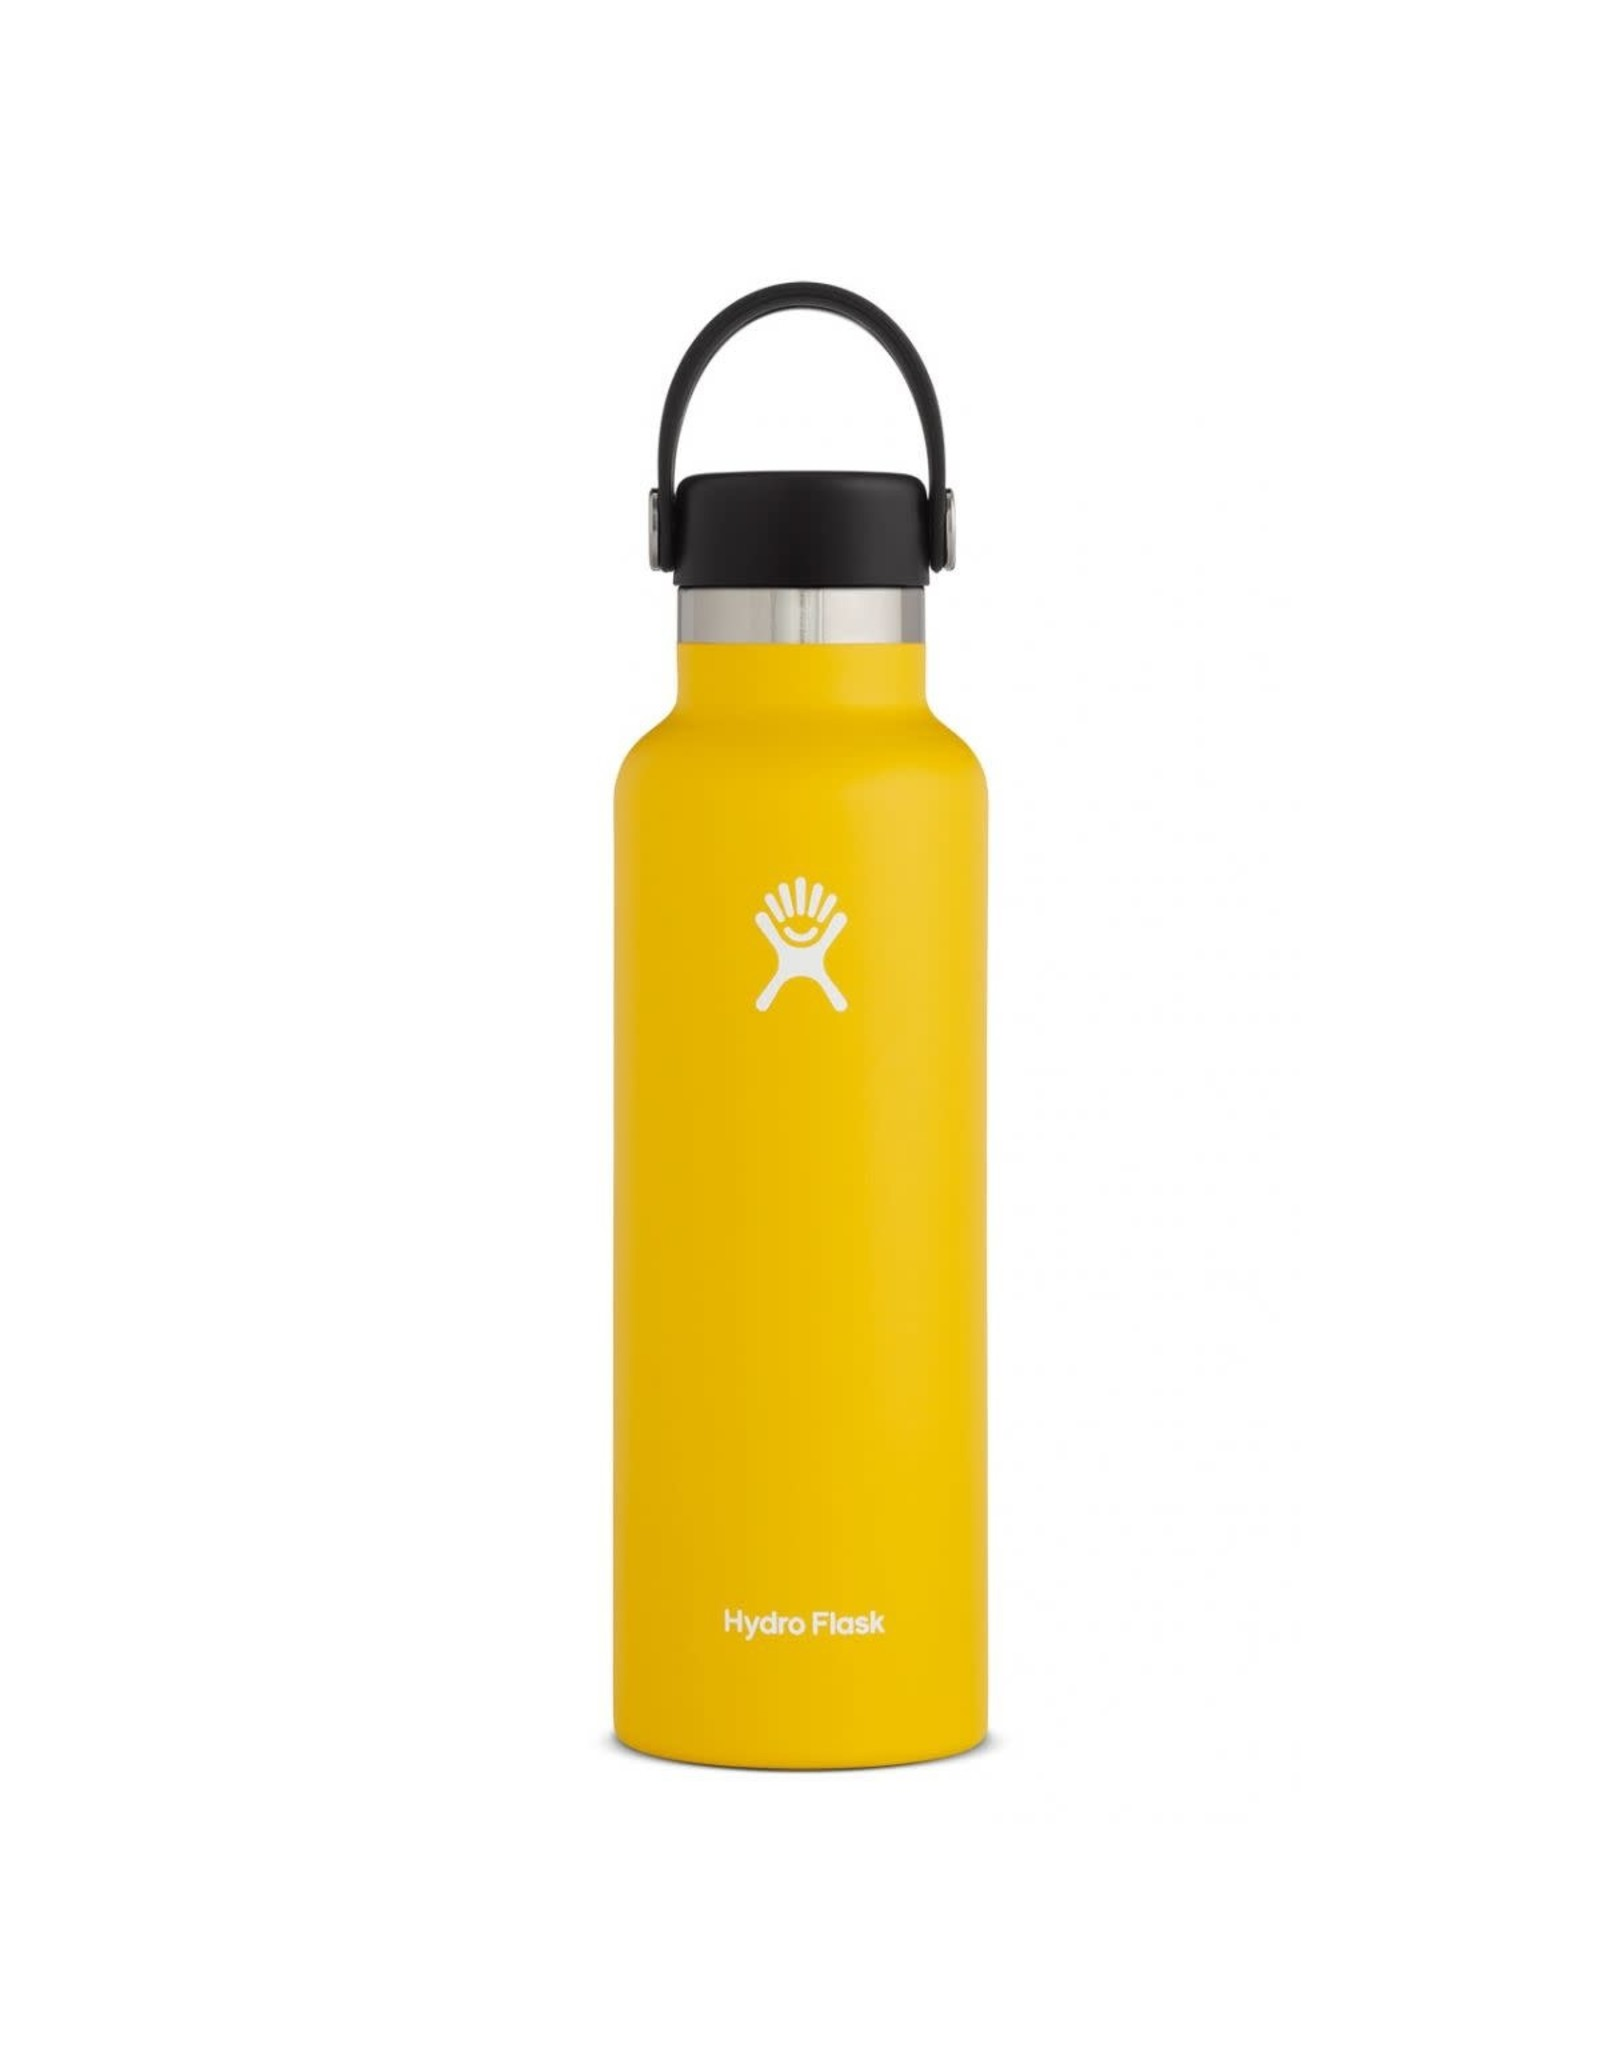 Hydro Flask Hydro Flask 21oz Standard Mouth Sunflower